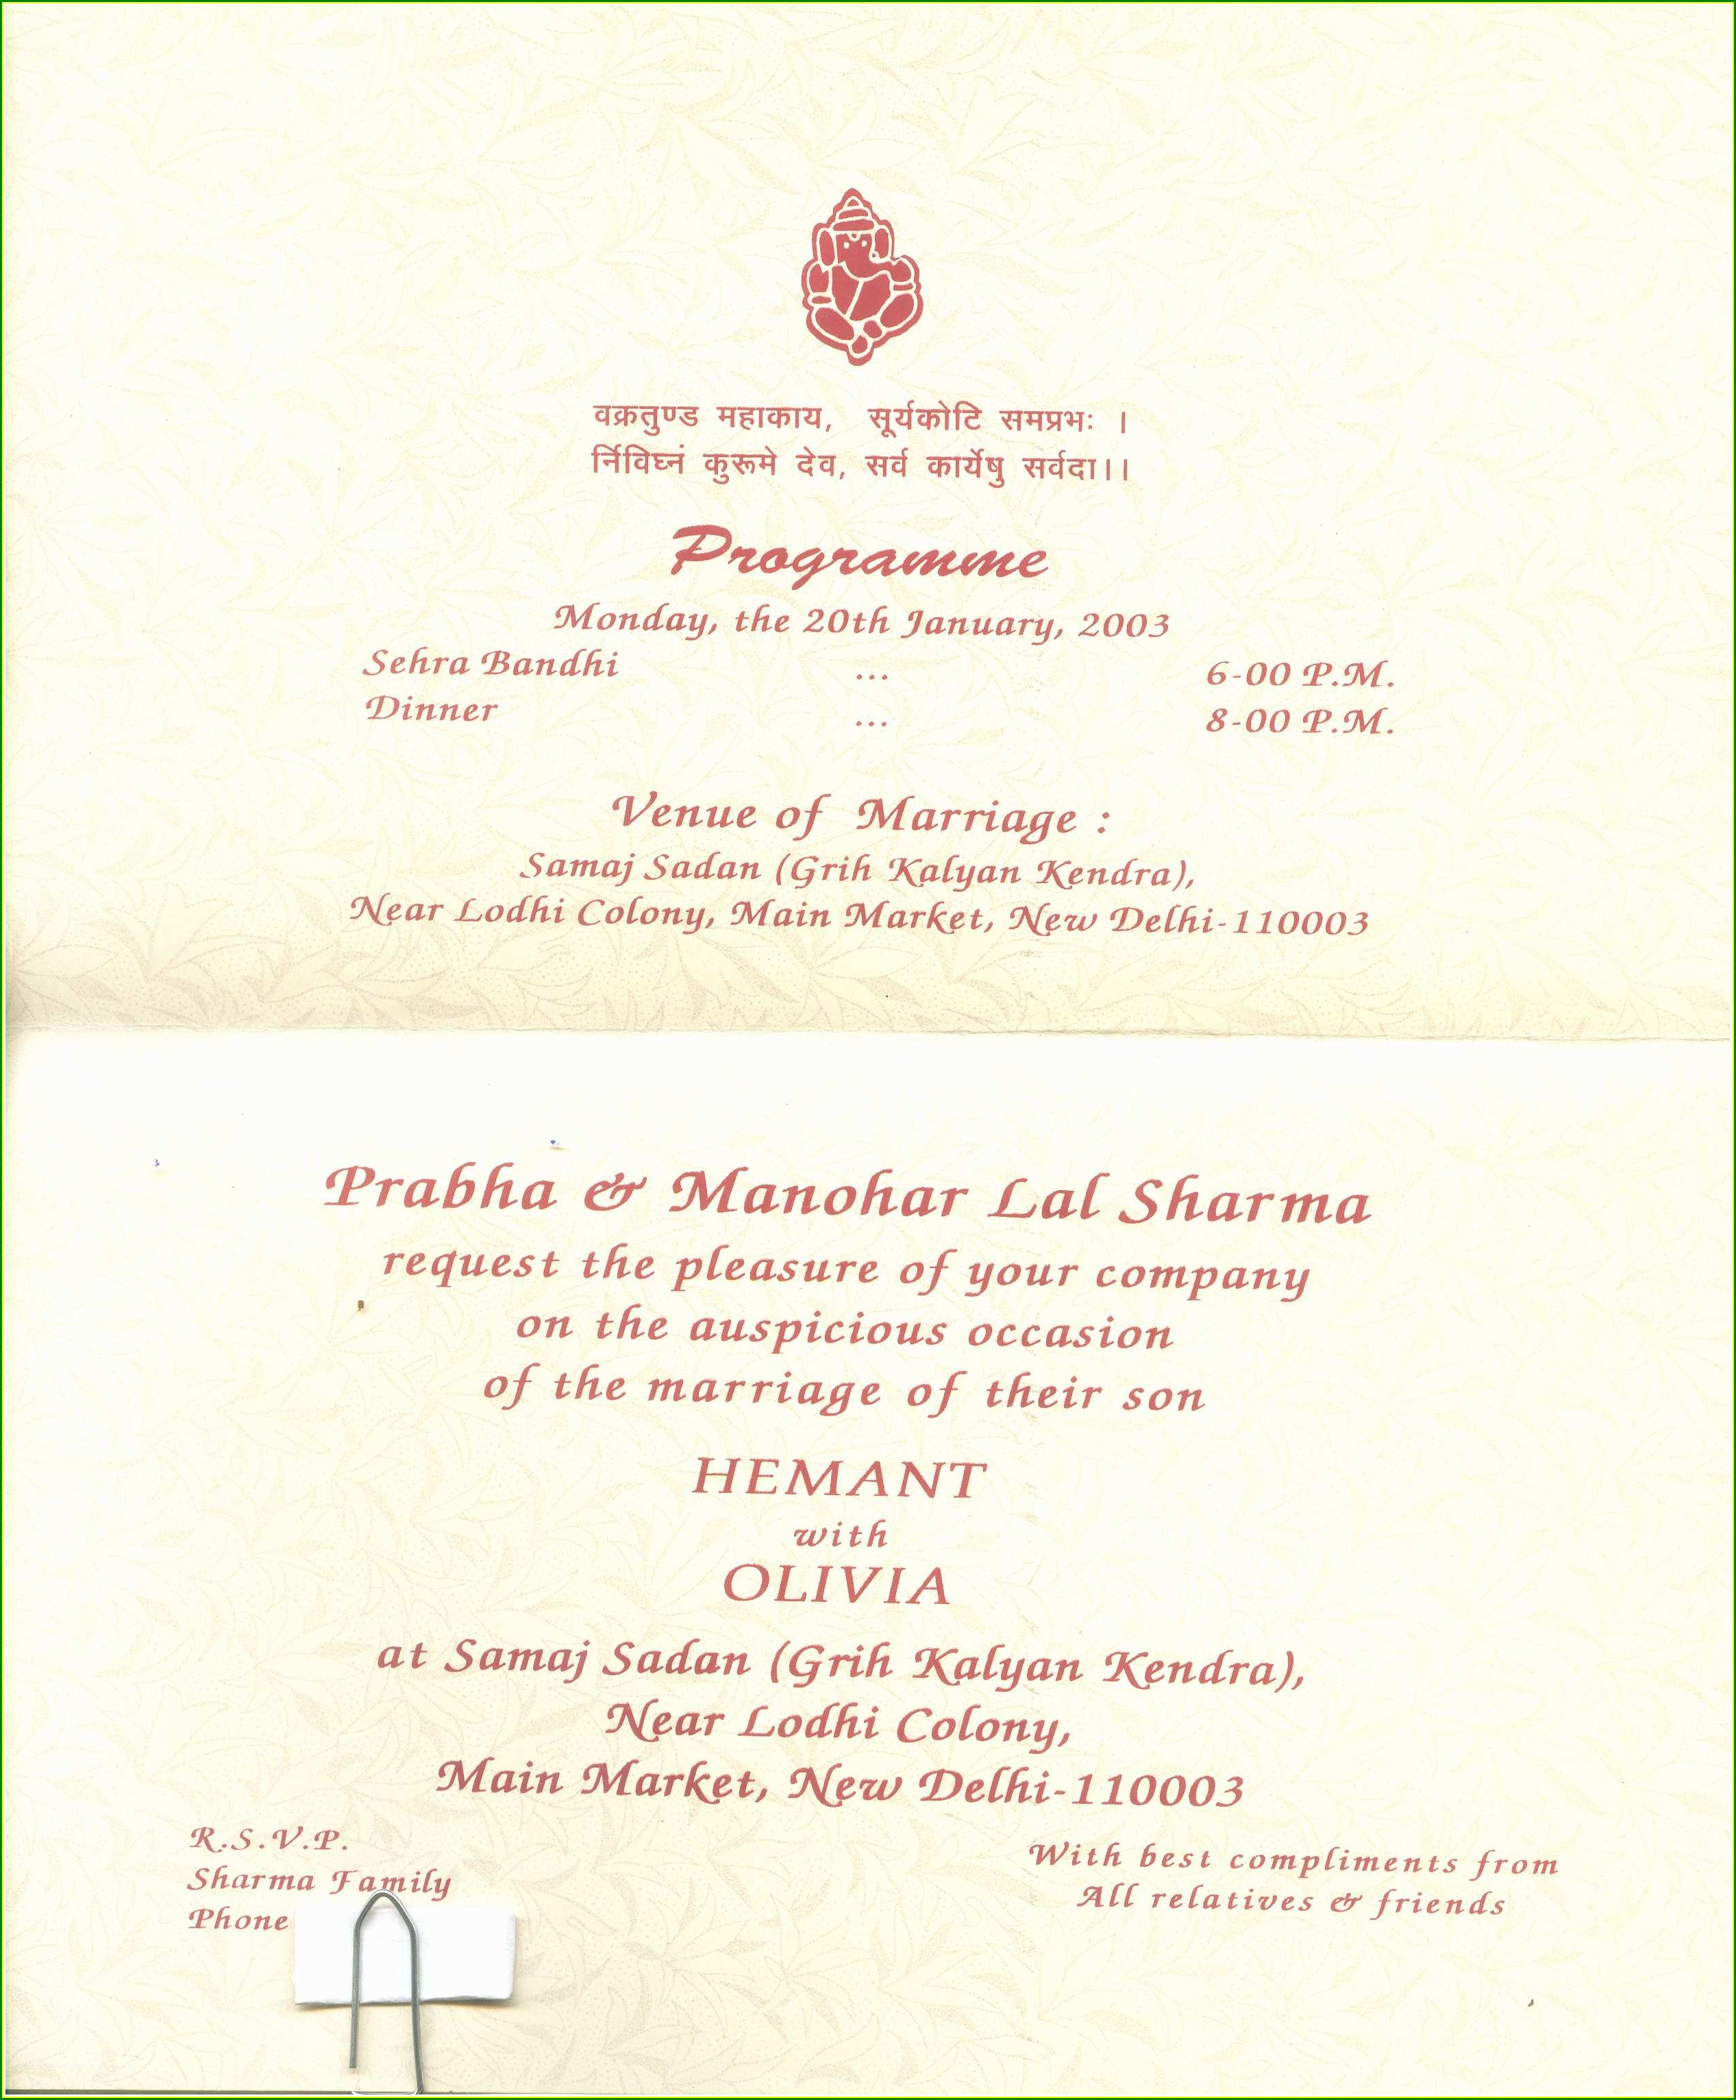 Hindu Indian Wedding Invitation Wording For Friends